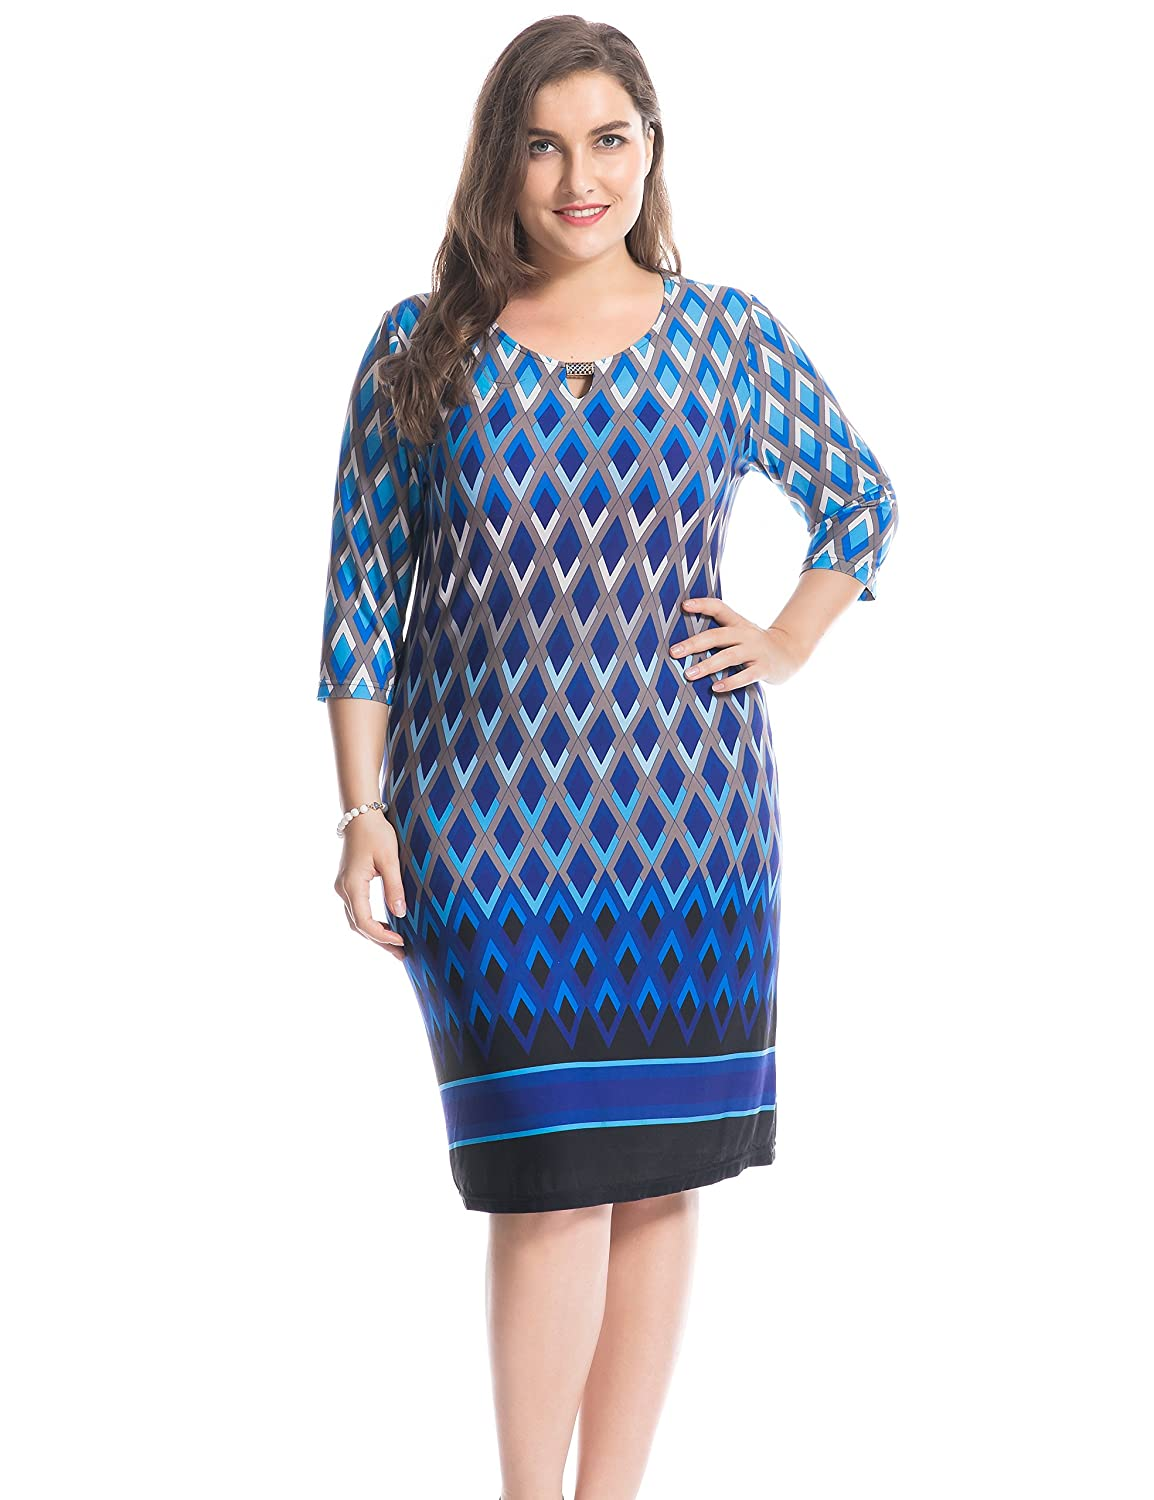 Chicwe Women's Plus Size Printed Dress Keyhole Neck With Metal Trim Border US16-26